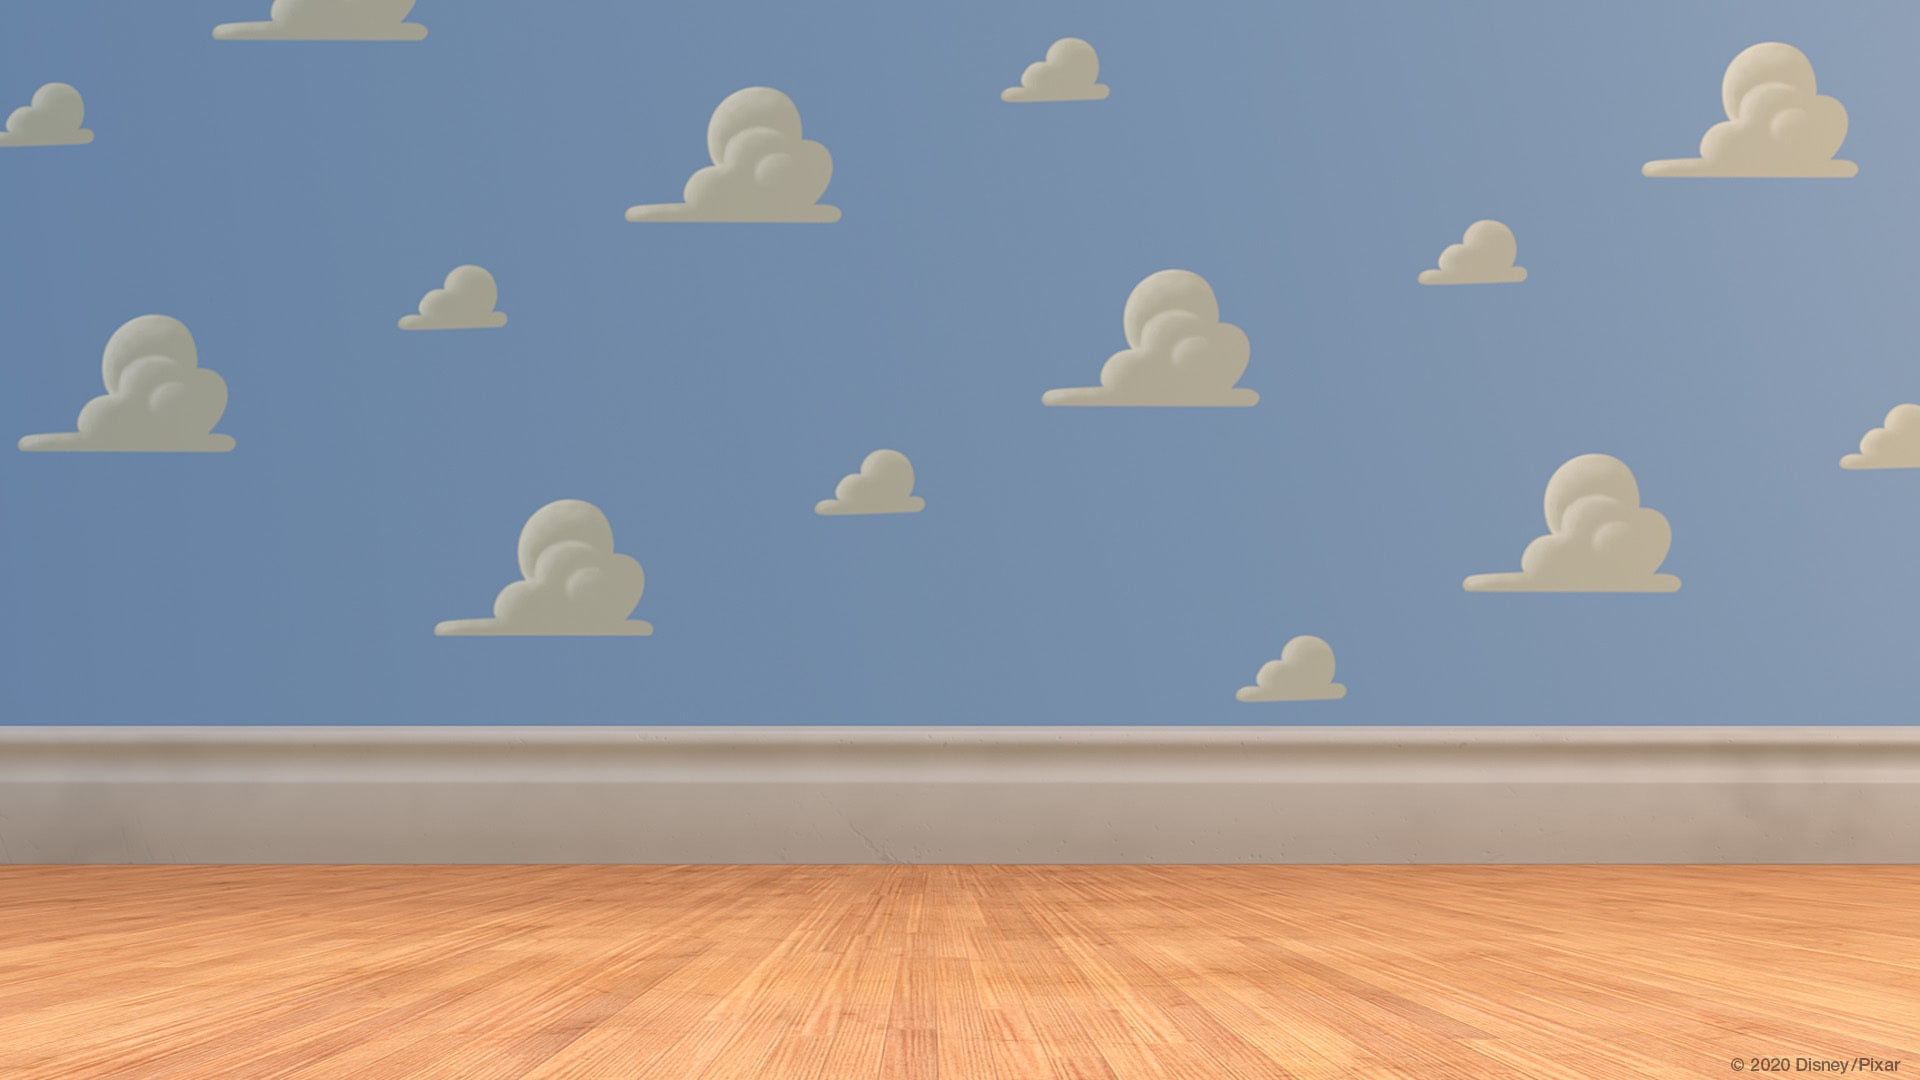 Brighten Up Your Next Video Call With Backgrounds From Pixar 1920x1080